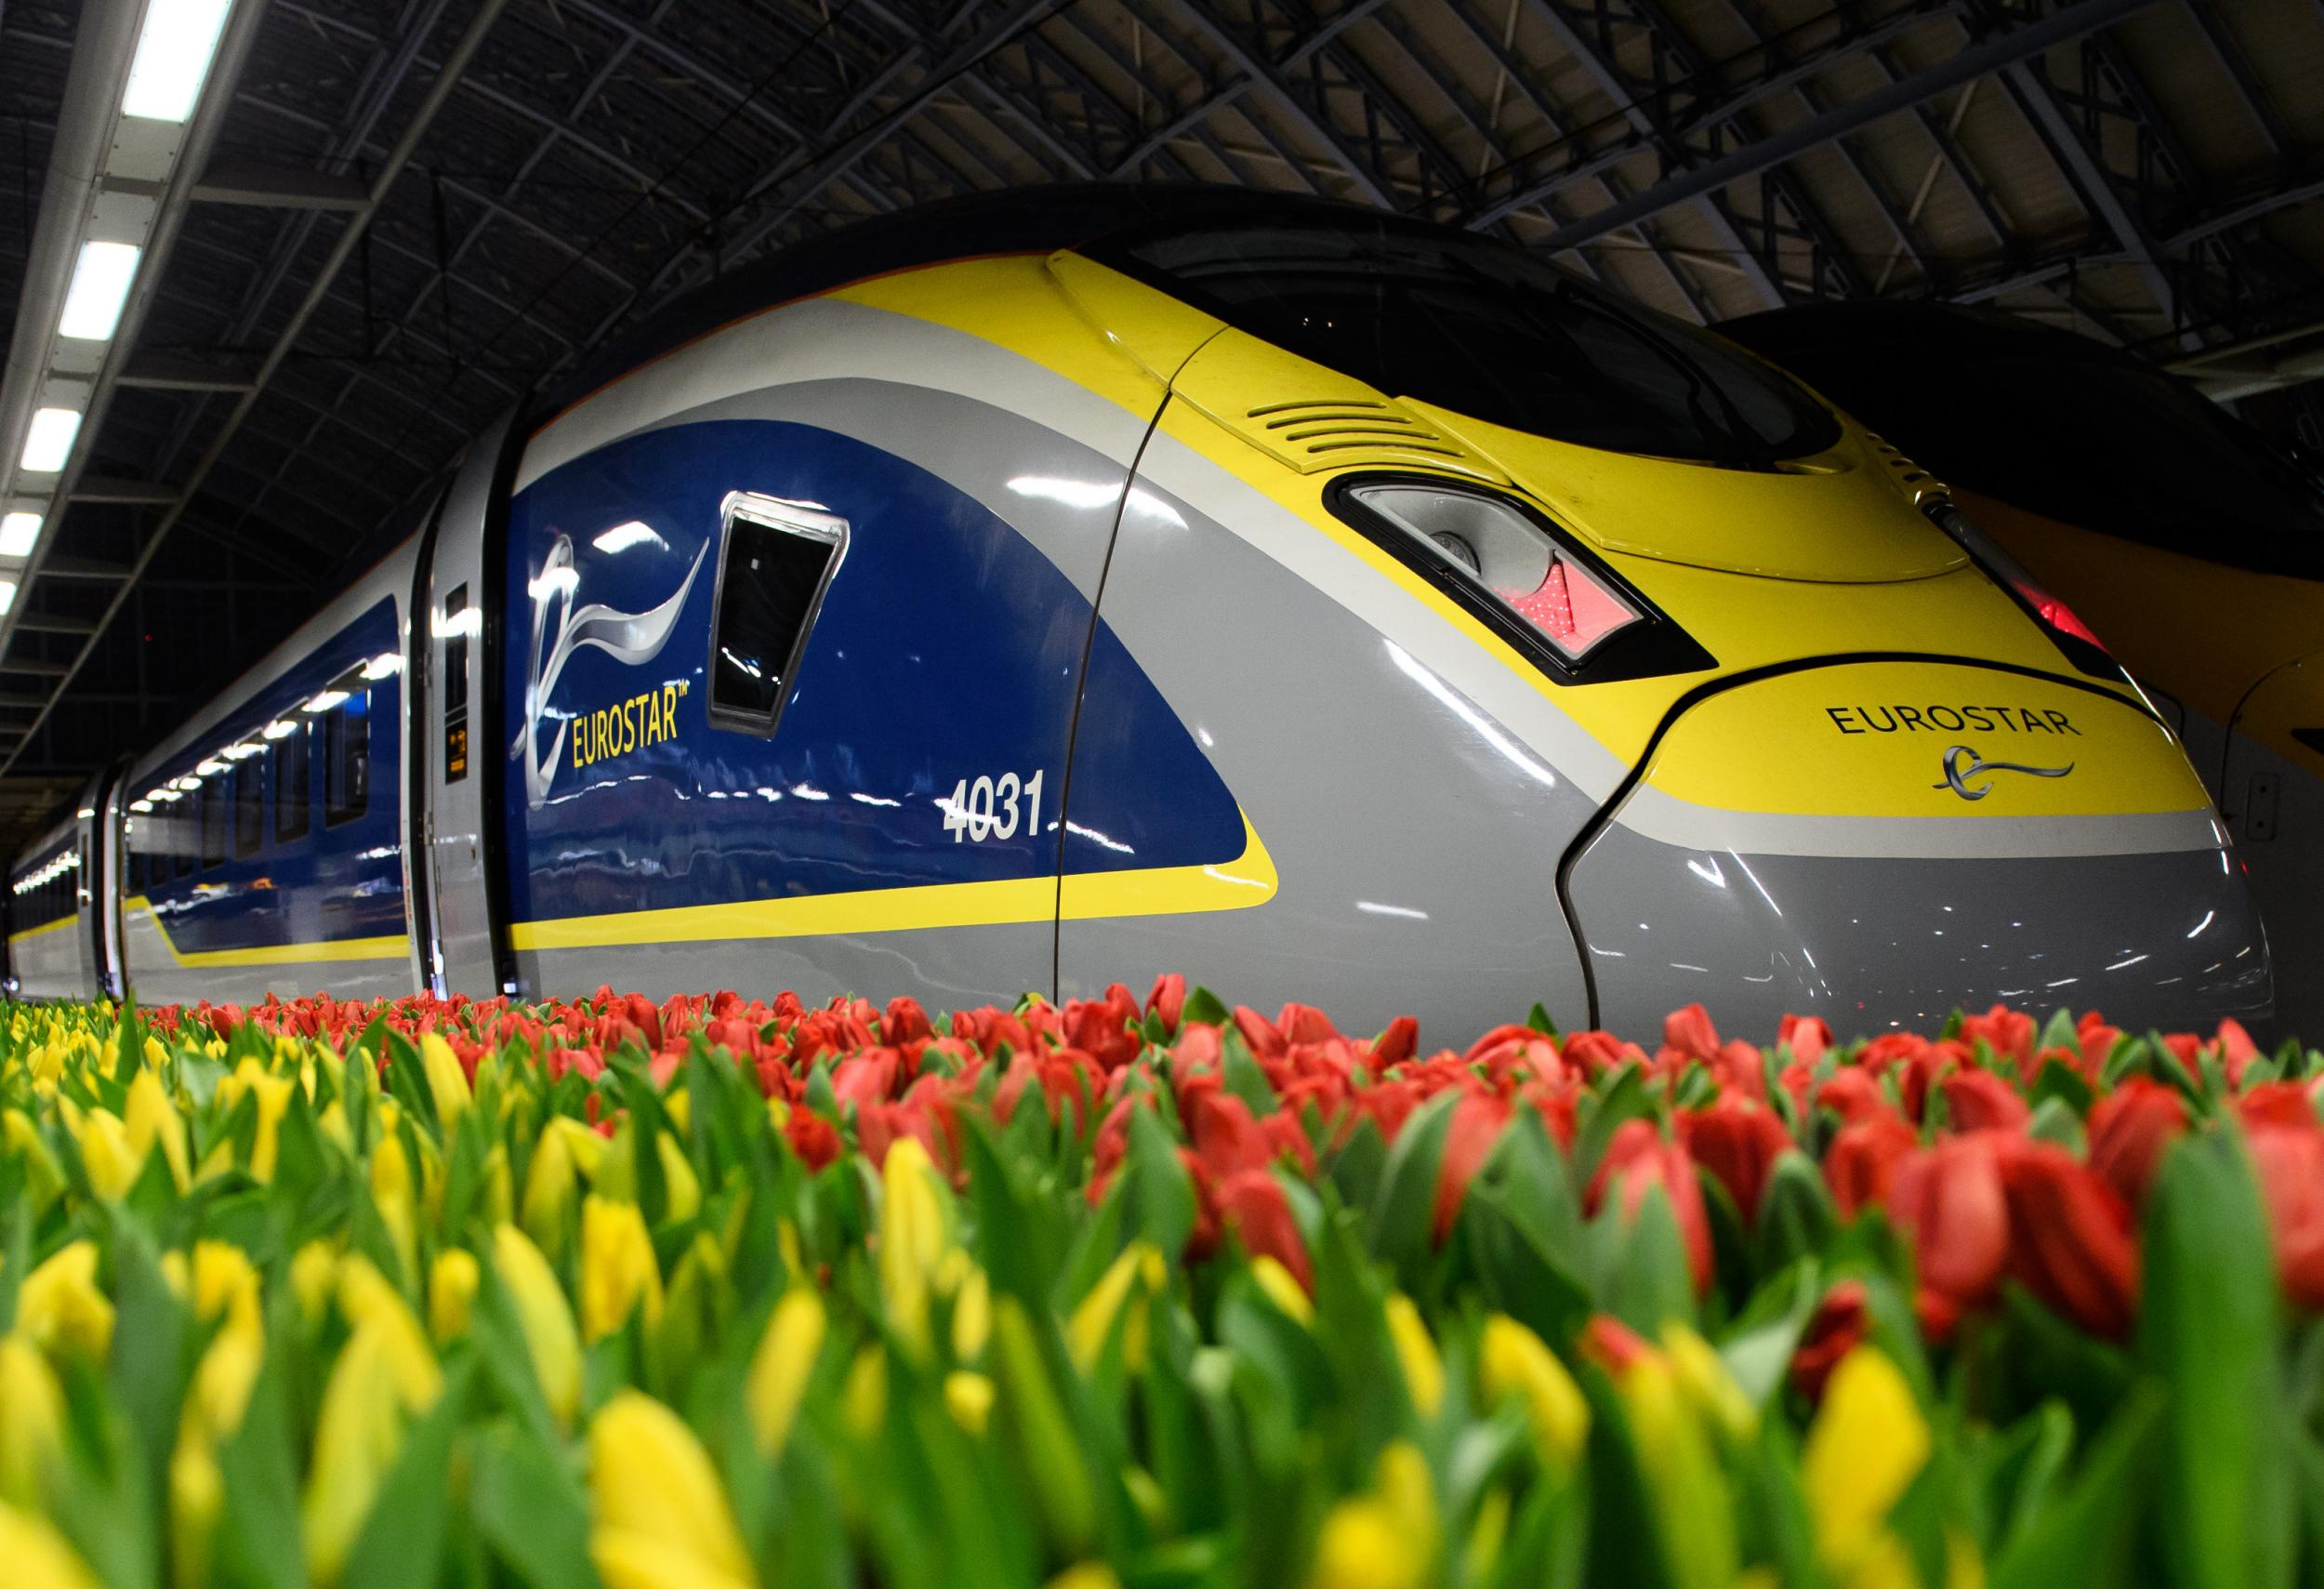 Amsterdam to London Eurostar - LIVE: What it's like onboard the first direct Netherlands-UK train service